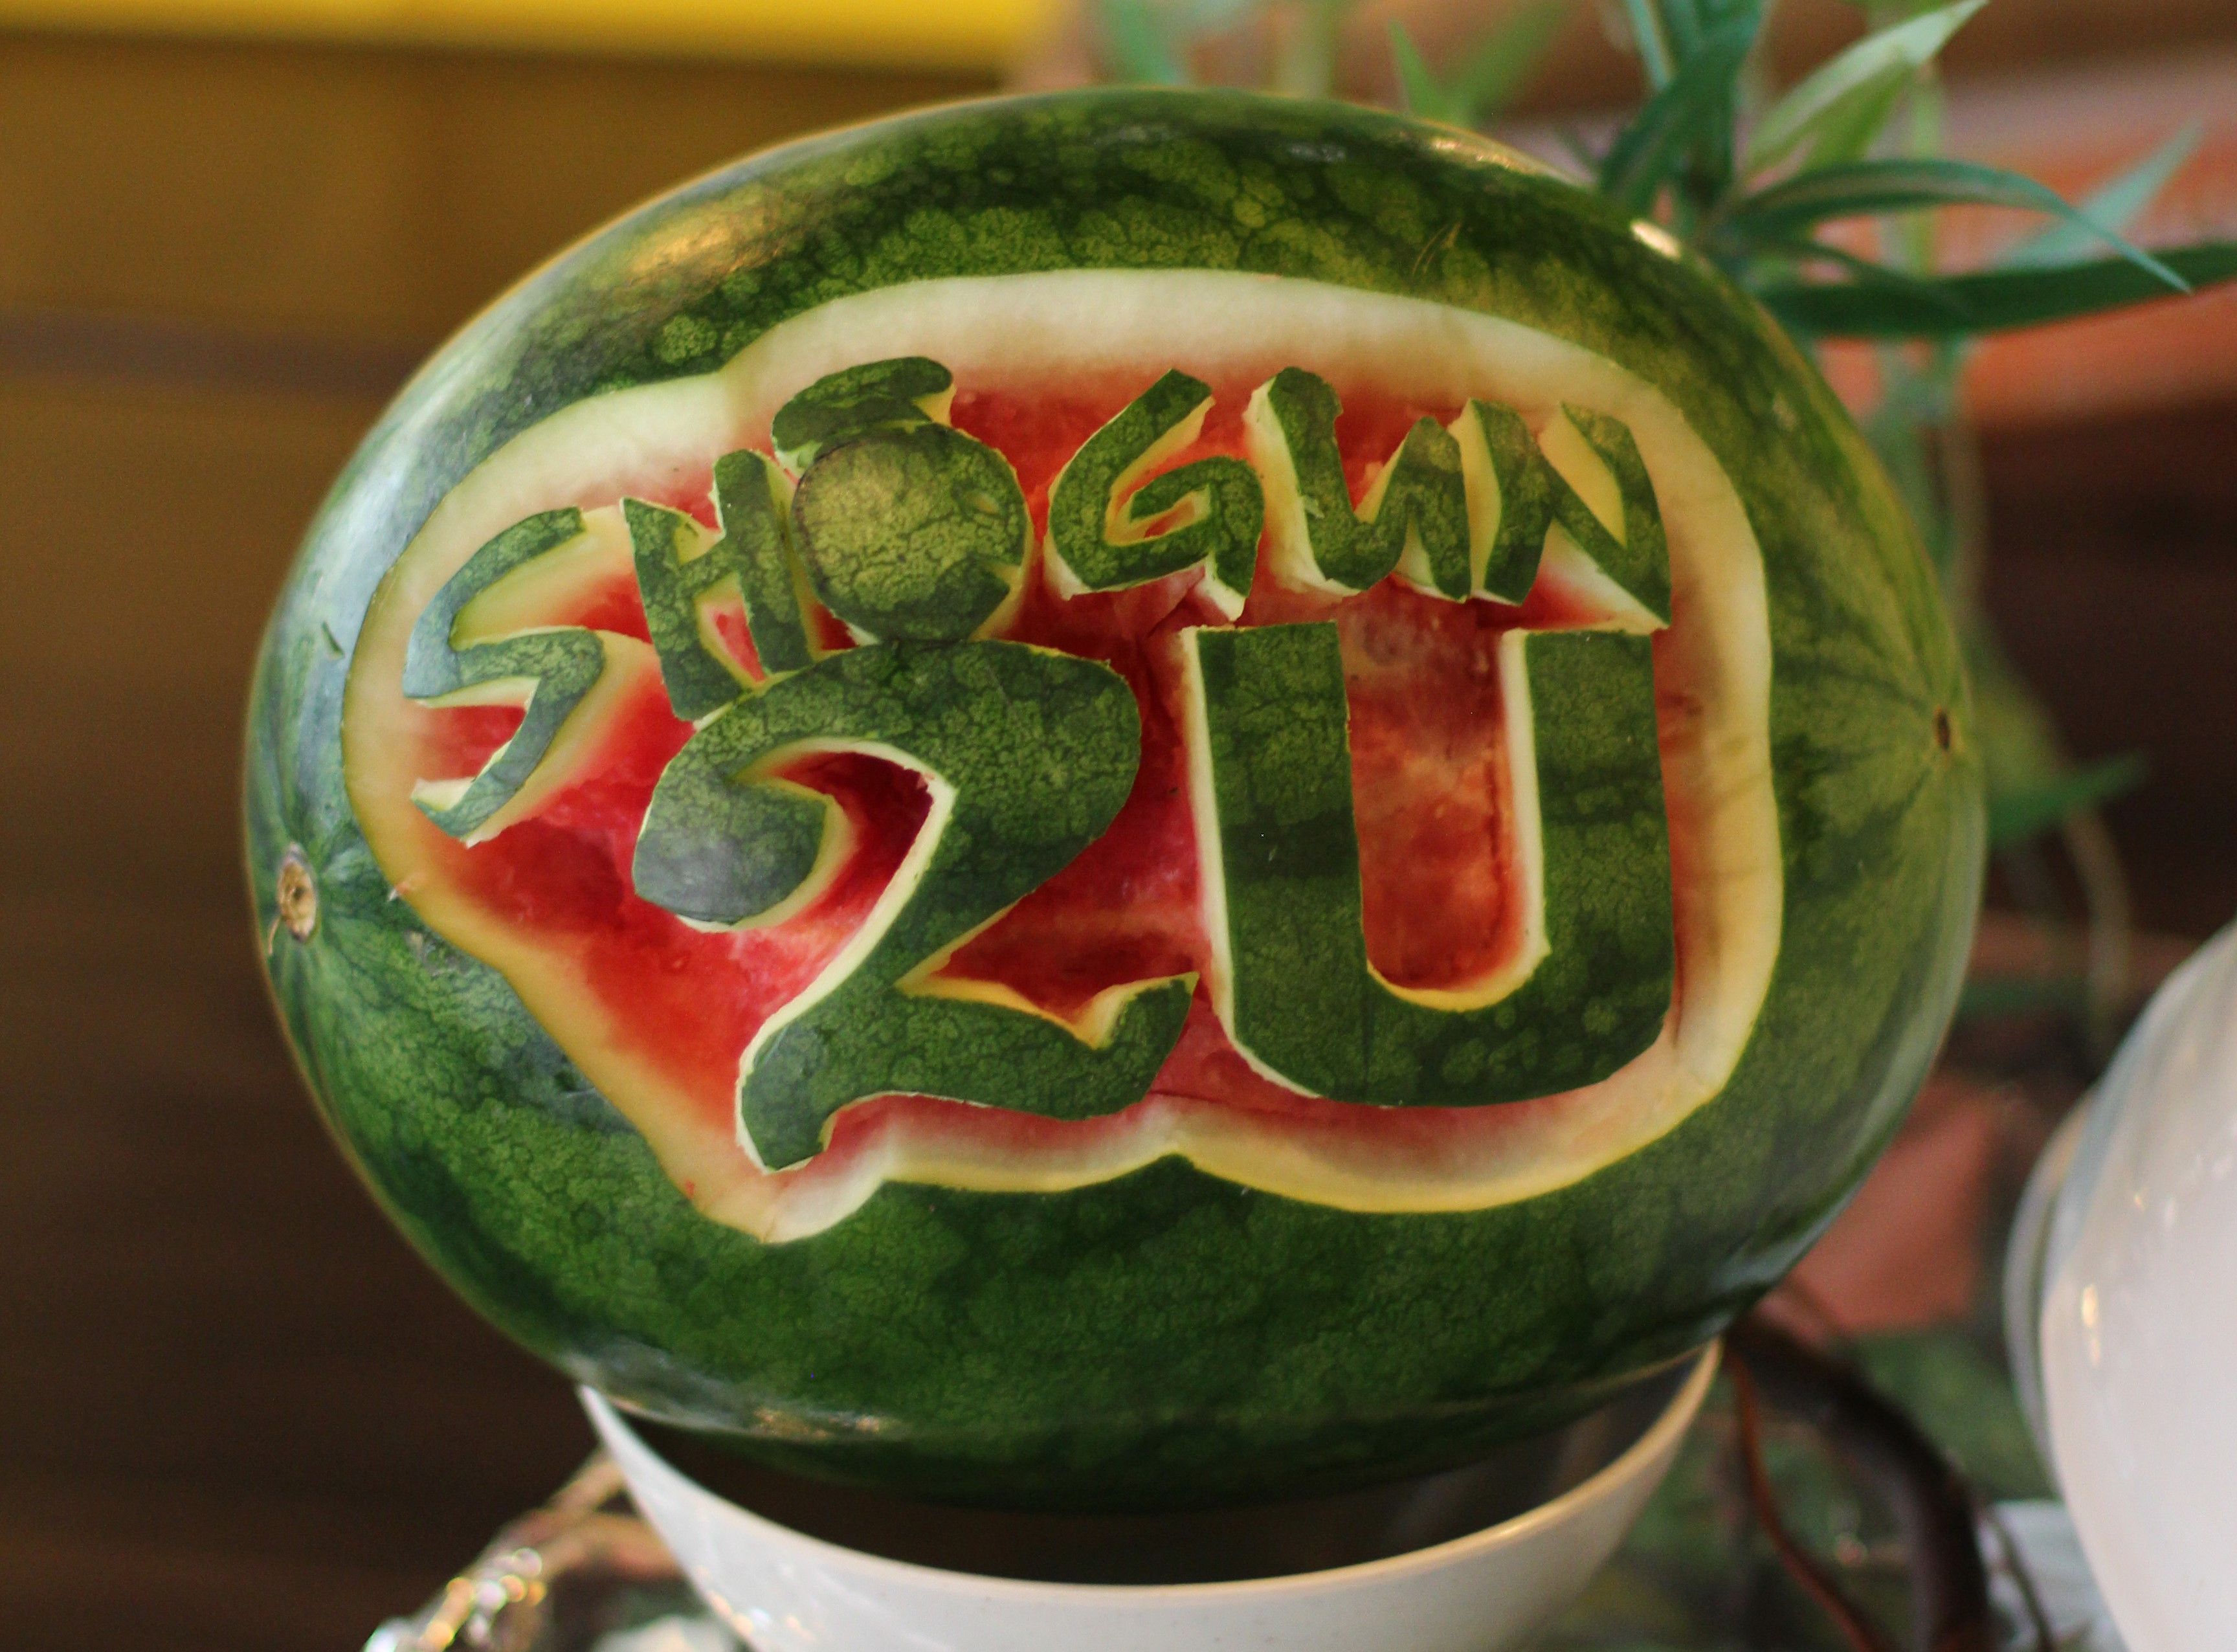 'Shogun2U' carved out on a watermelon. How creative?